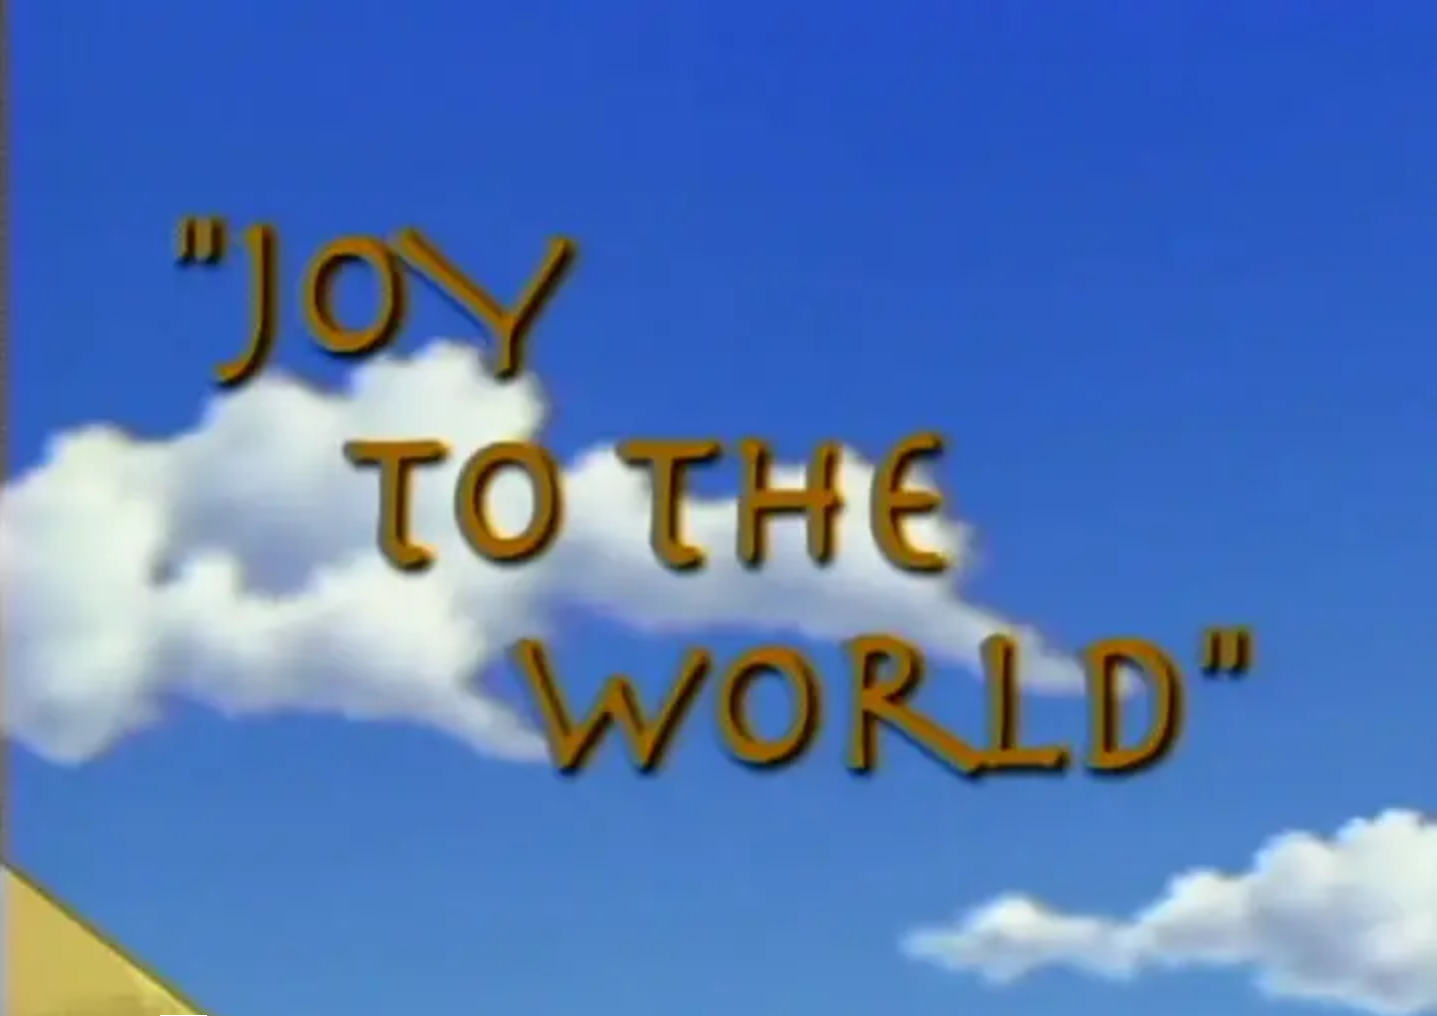 Bugtime Adventures - Joy to the World - The Christmas Story